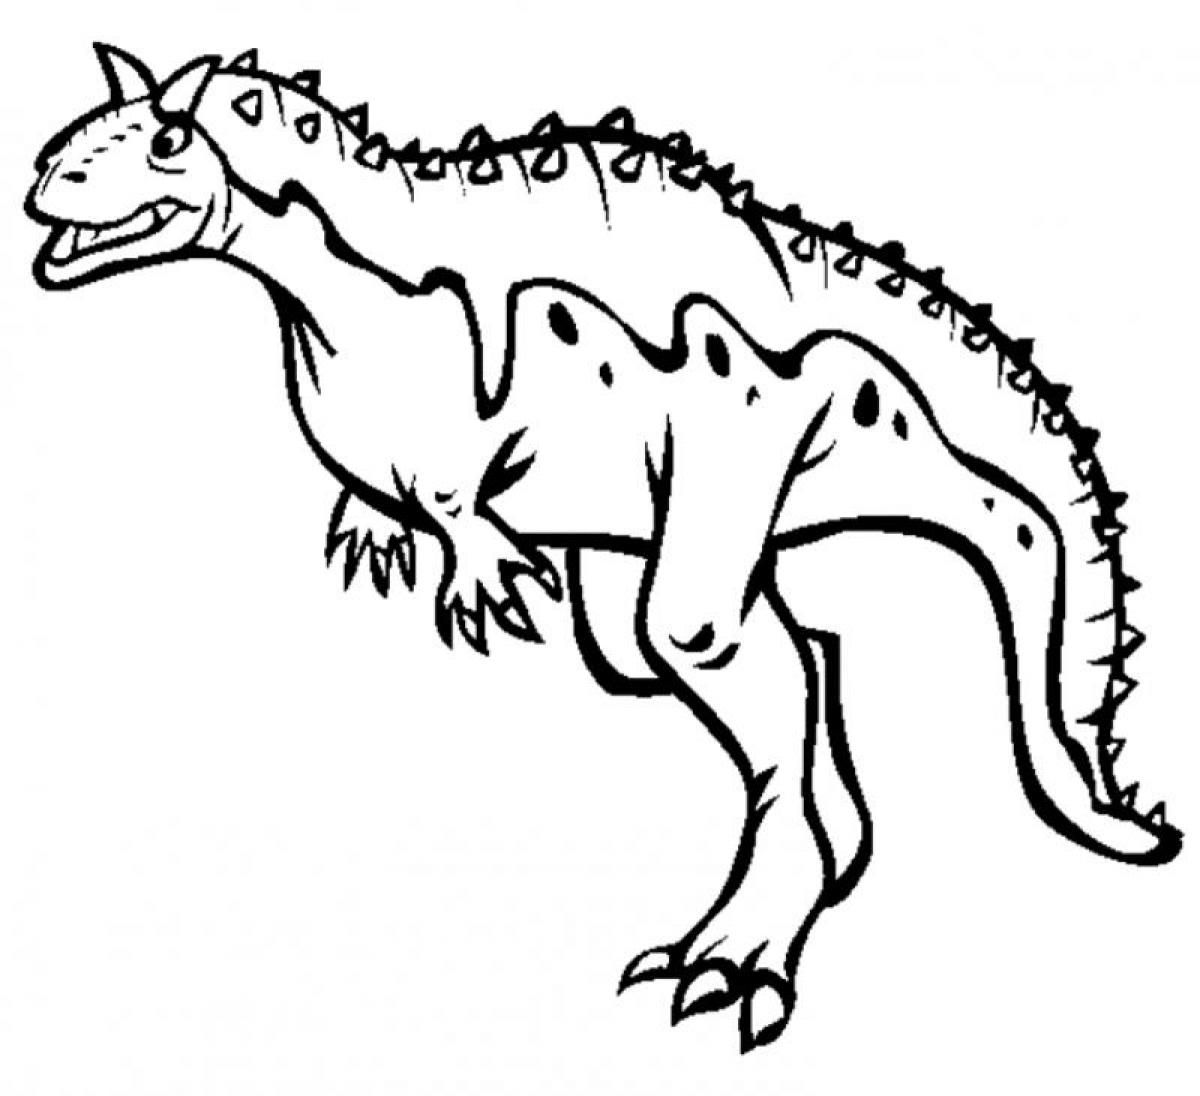 carnotaurus coloring pages coloring pages. Black Bedroom Furniture Sets. Home Design Ideas